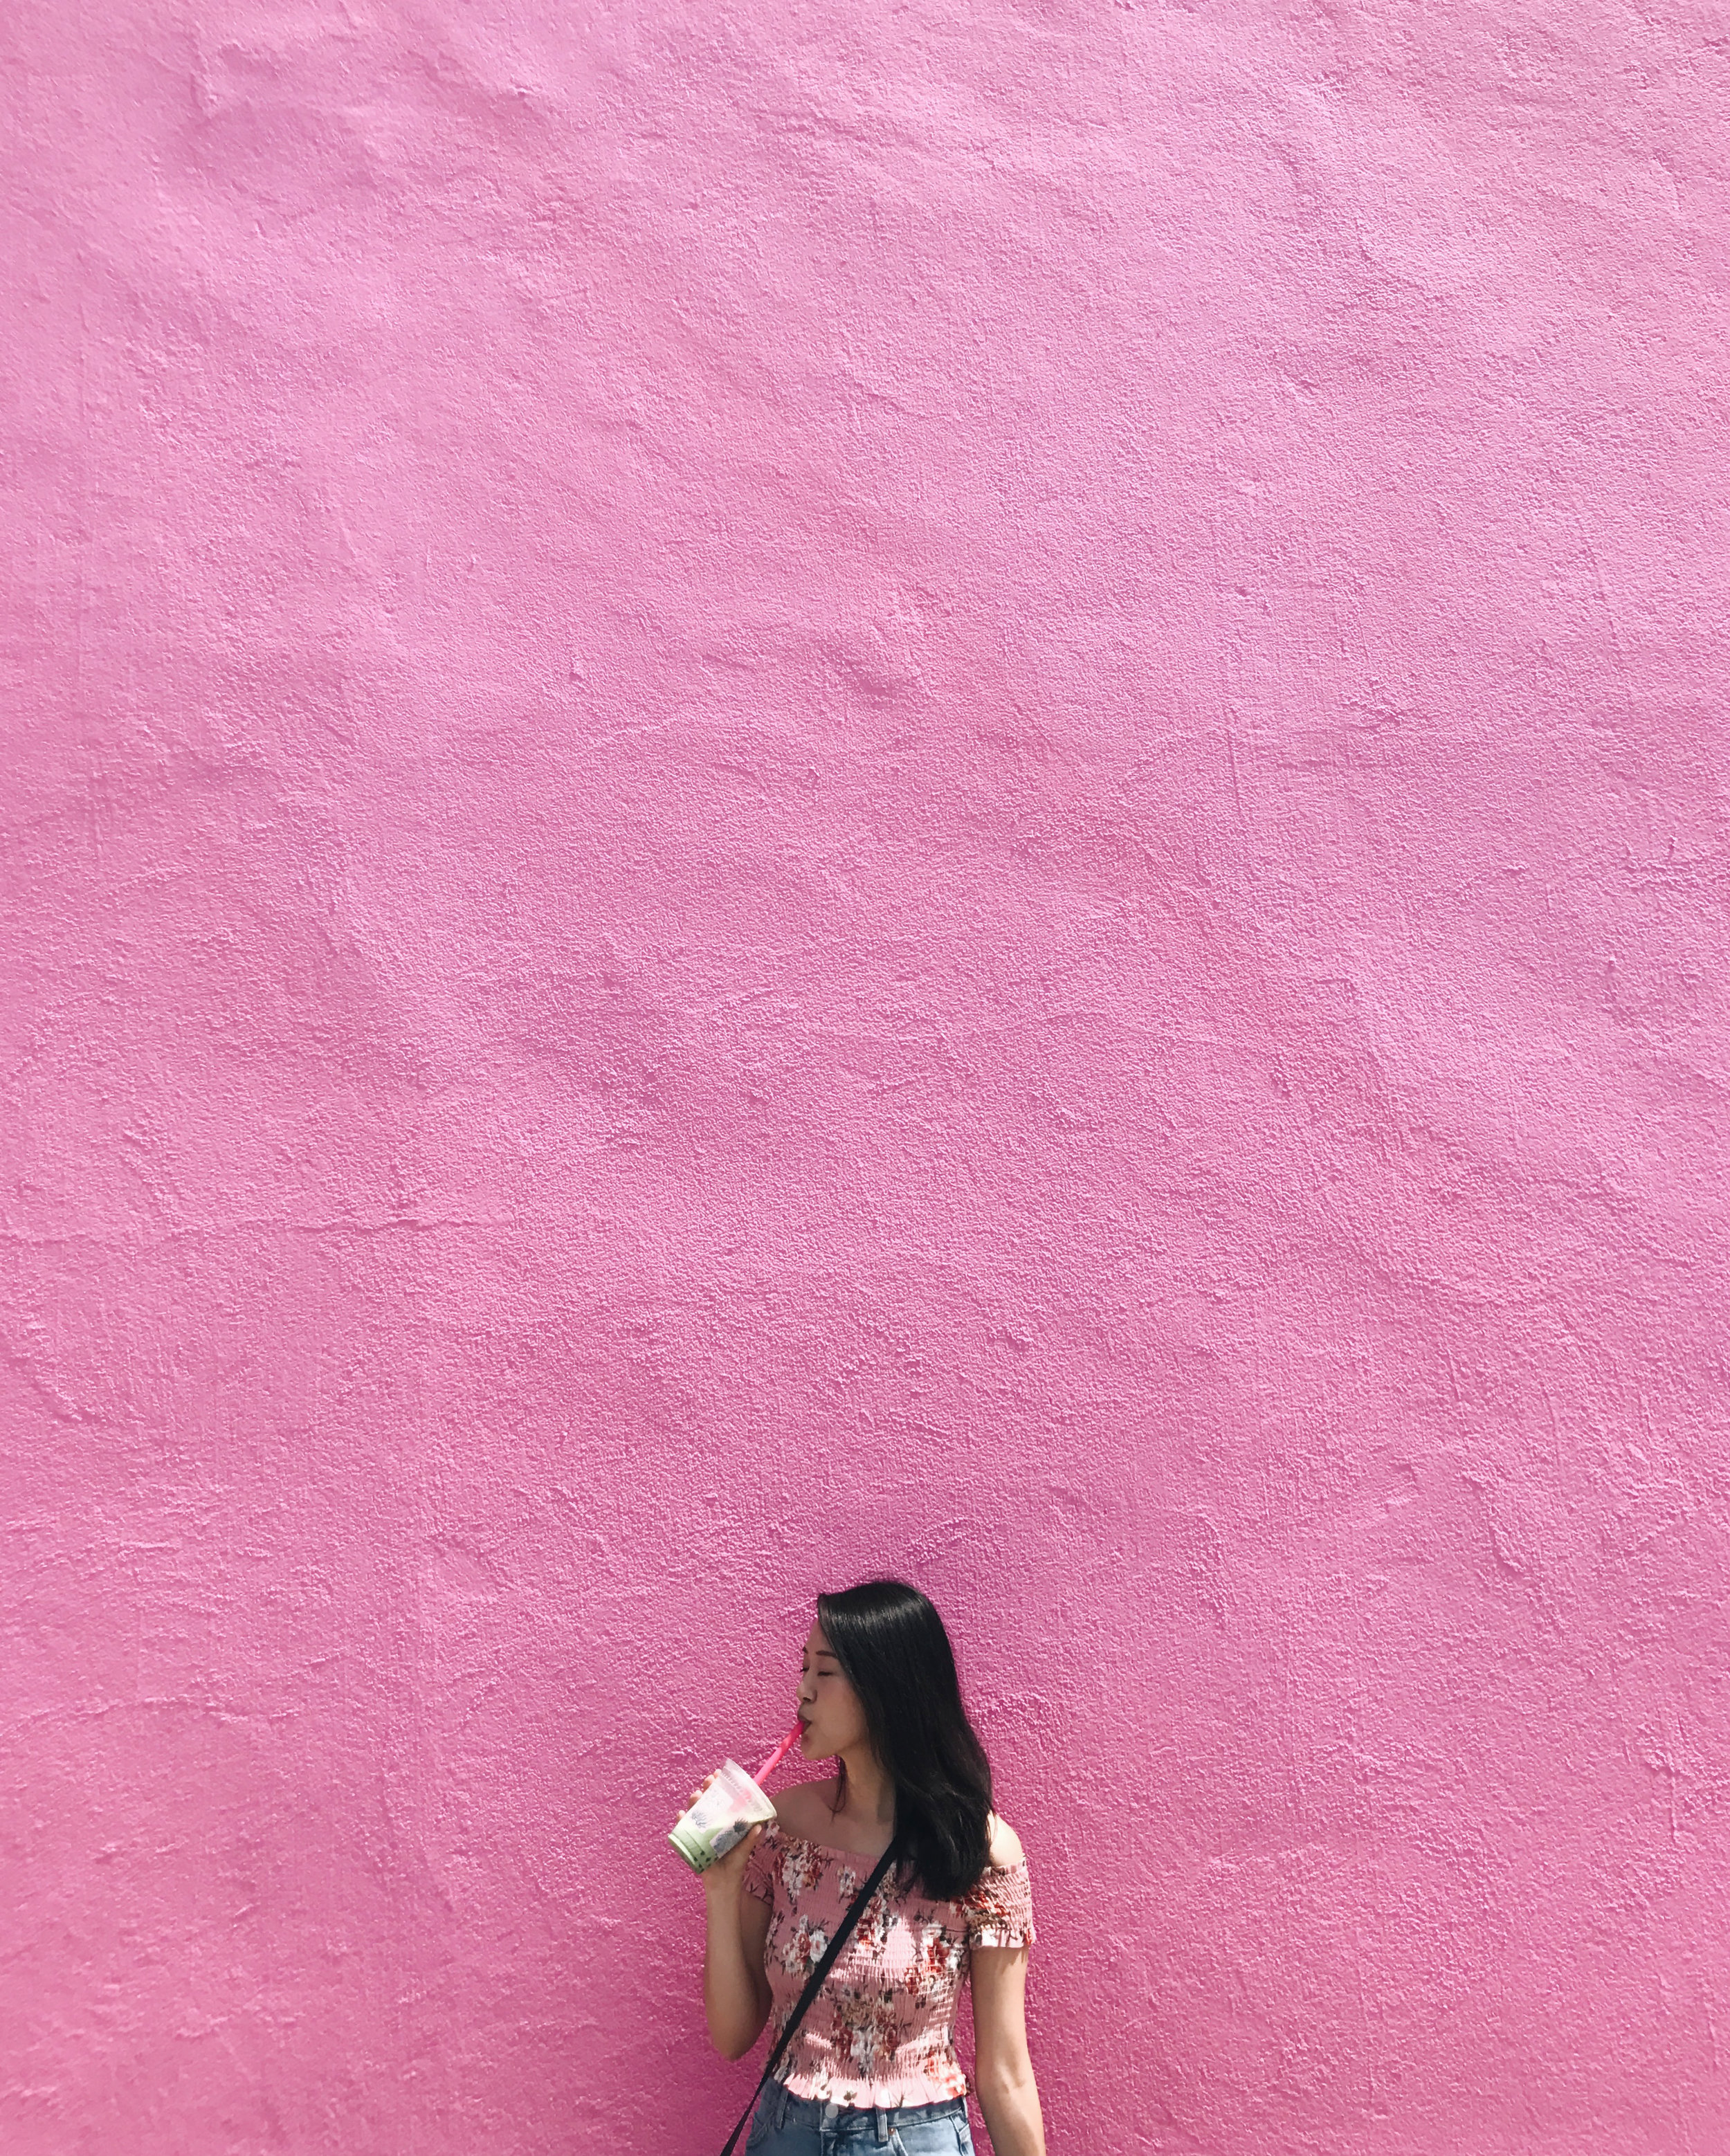 Pink Wall @ Paul Smith Building